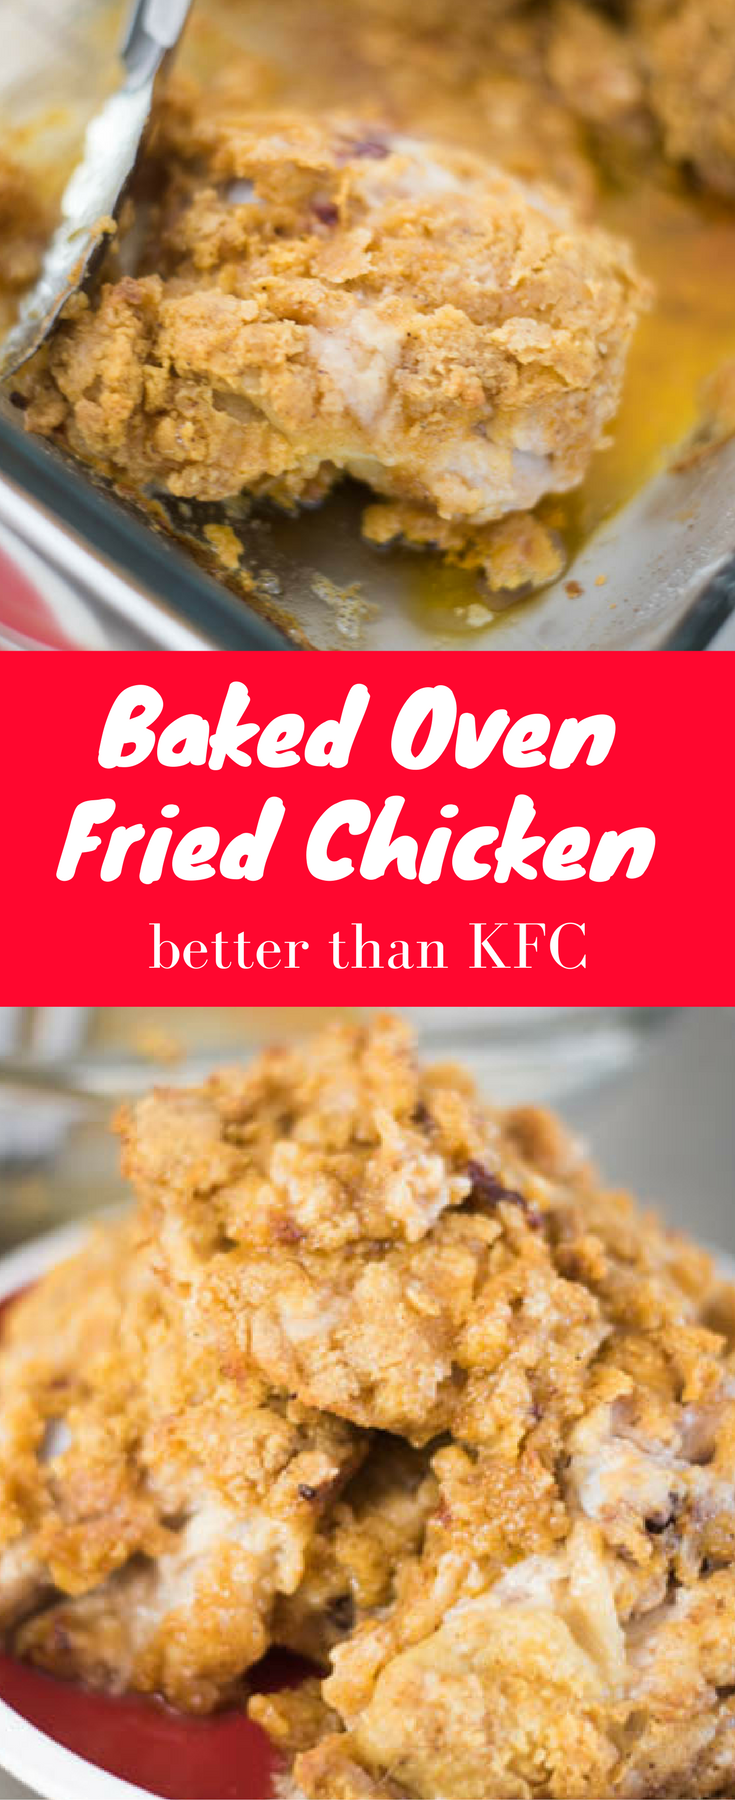 Oven Fried Chicken / Oven Baked Chicken / Crispy Oven Baked Chicken / Crispy Fried Chicken / Easy Fried Chicken / KFC Fried Chicken / KFC Chicken / Copycat KFC / Baked Chicken / Breaded Chicken / Chicken Breading